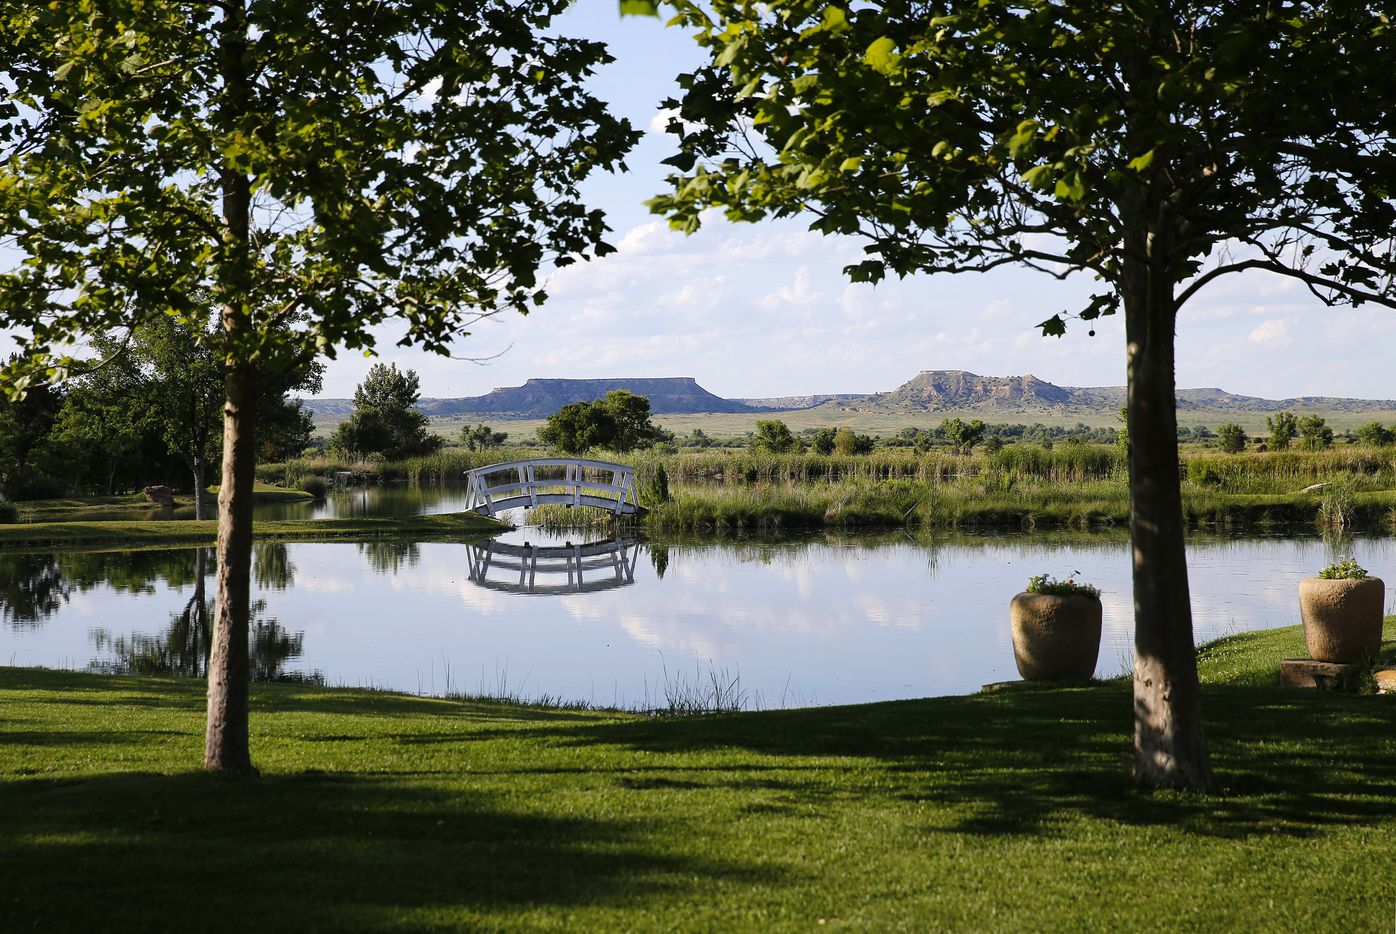 Mesas are seen across The Chapel bridge and pond on businessman T. Boone Pickens Mesa Vista Ranch.